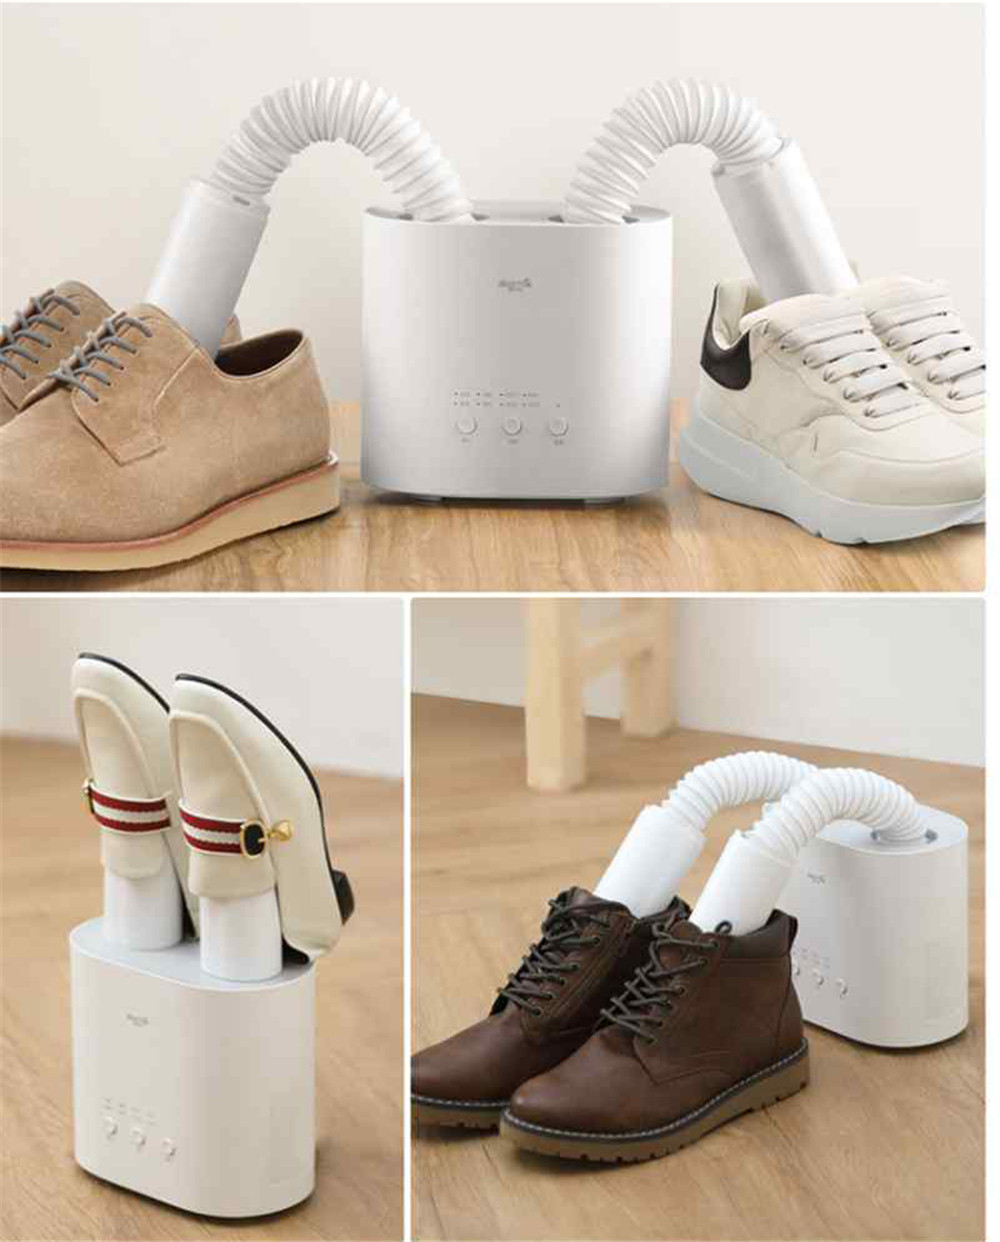 Delma intelligent multi-function telescopic disinfection U-type drying shoes New